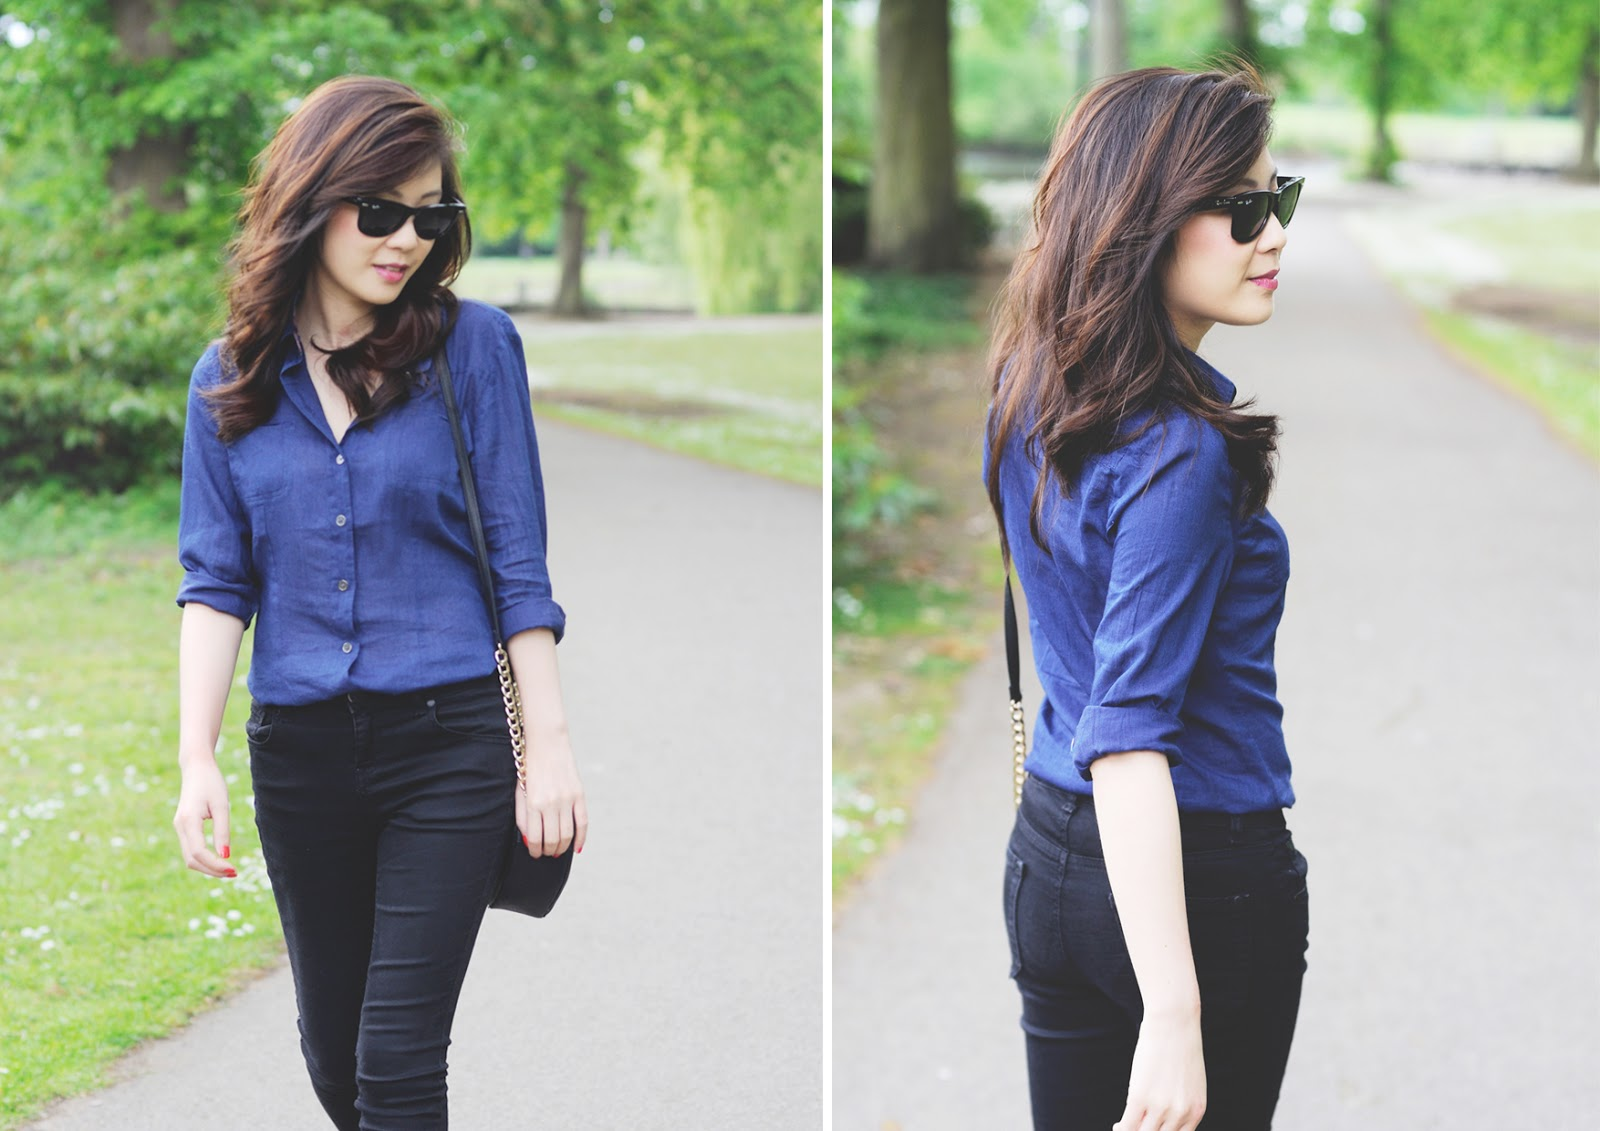 wearing black and blue together